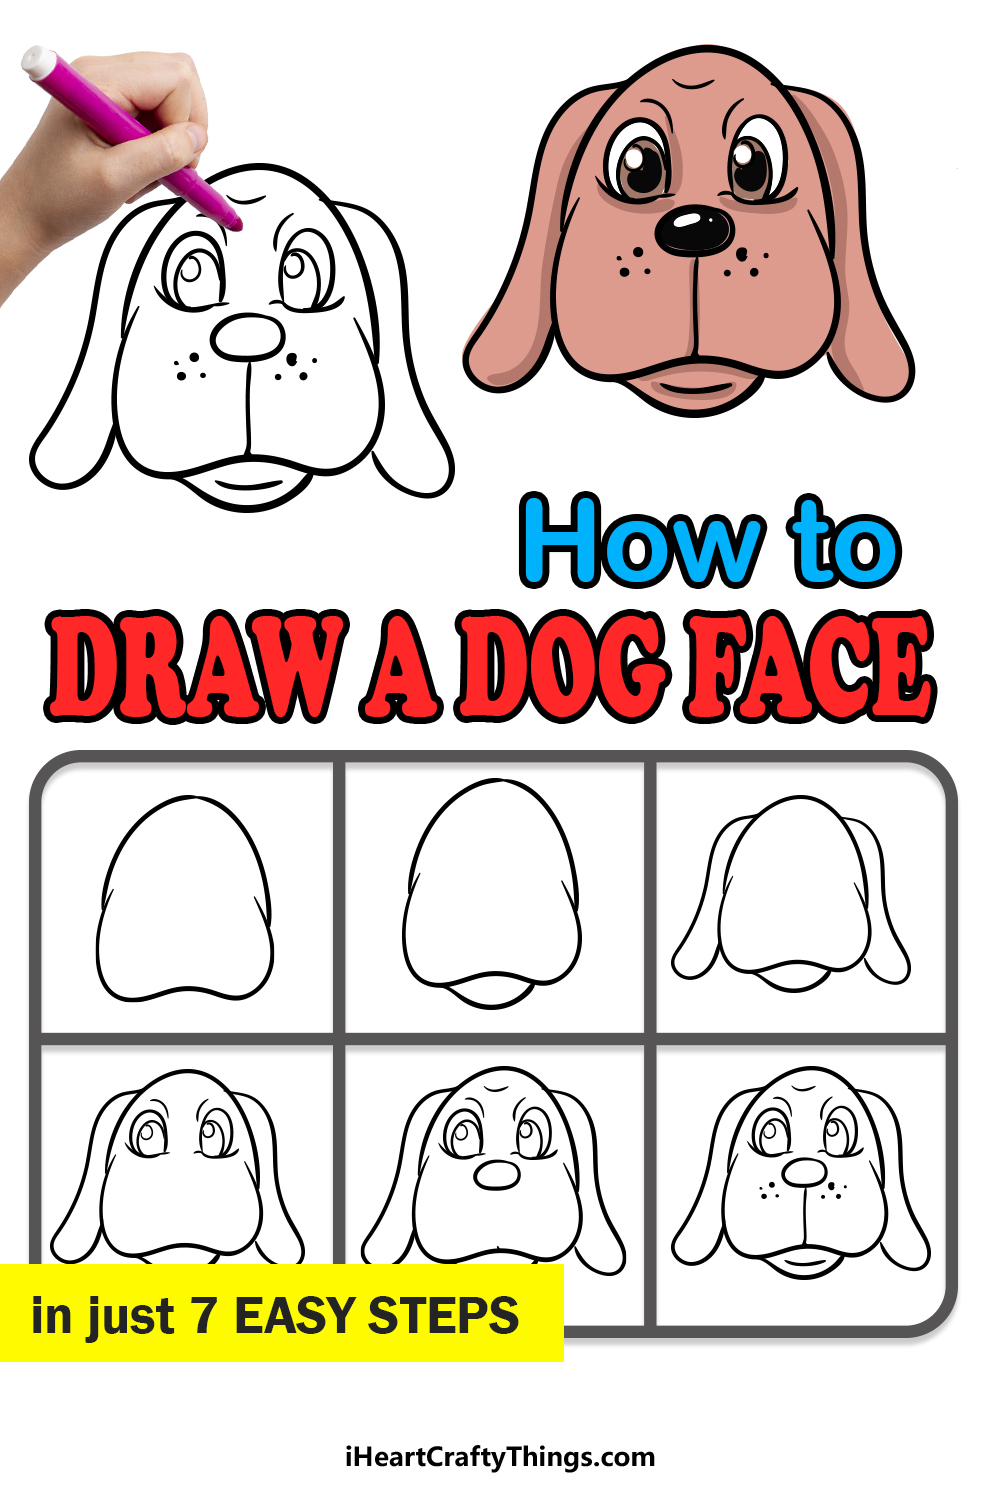 how to draw a dog face in 7 easy steps